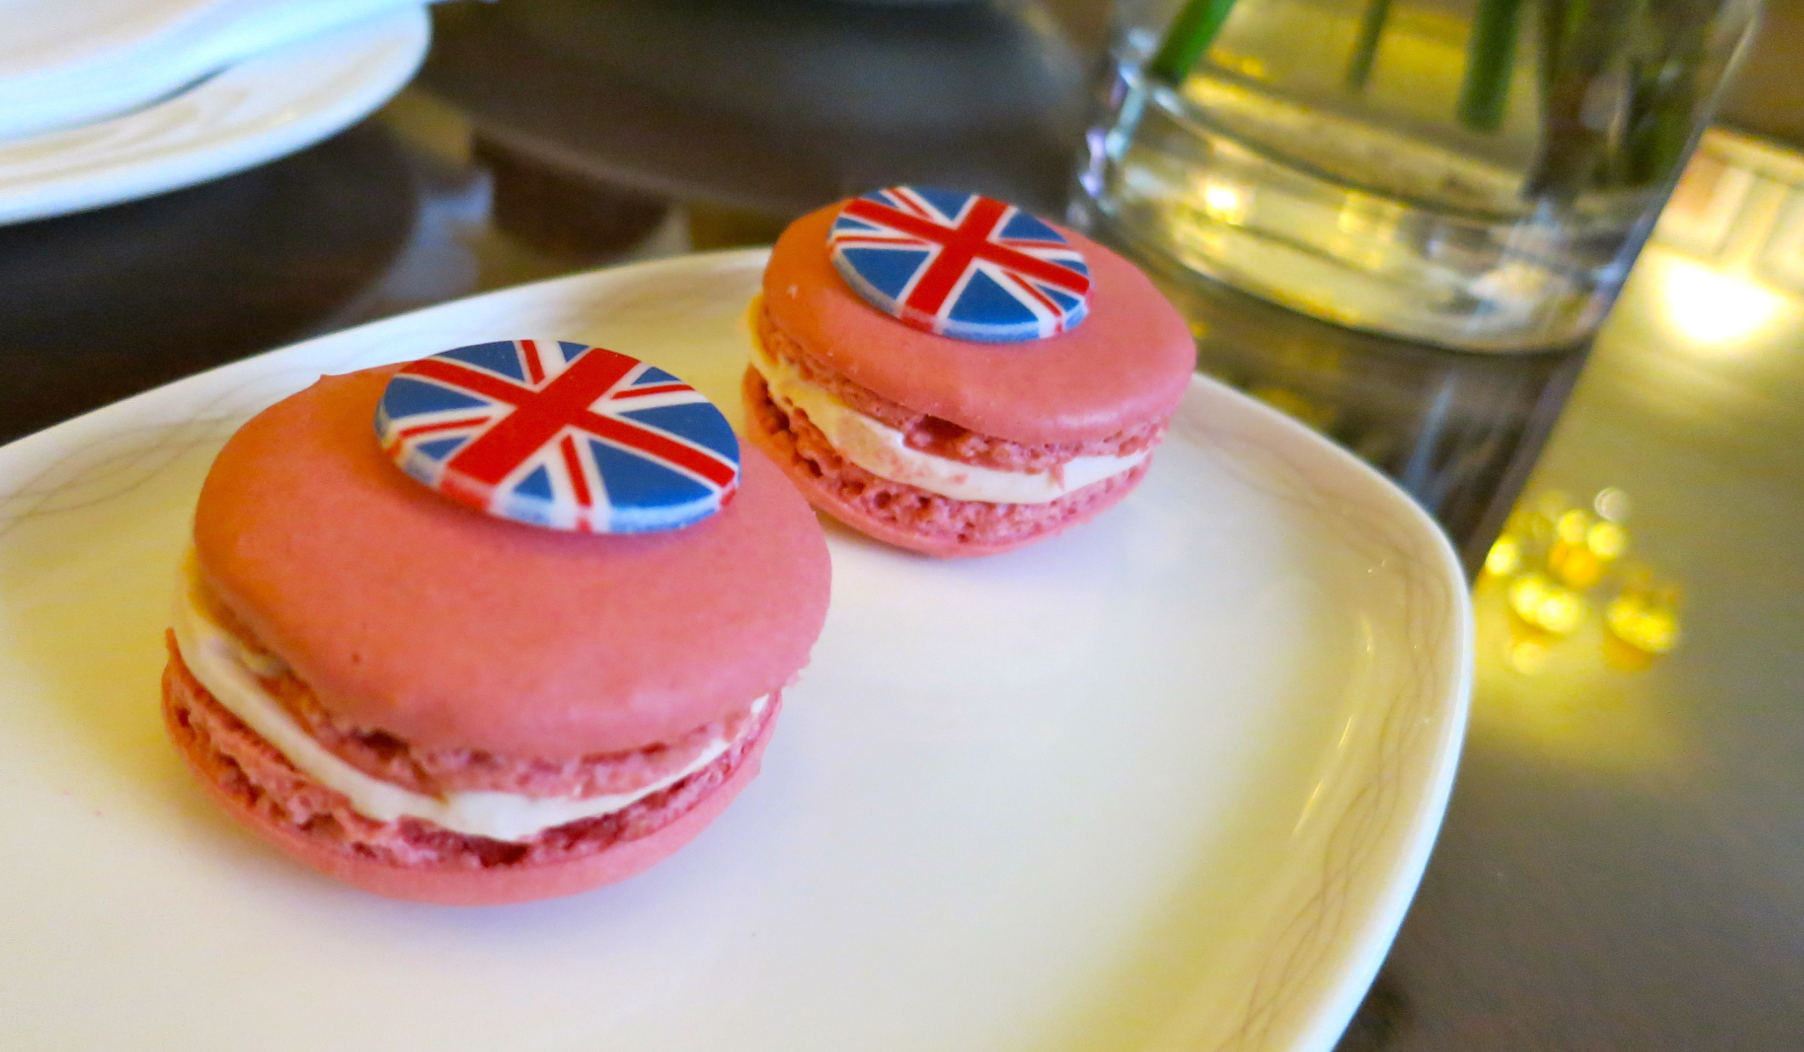 Afternoon tea at the Palm Court in London's elegant Langham Hotel is a sight to behold! (Photo: Chris McGinnis)